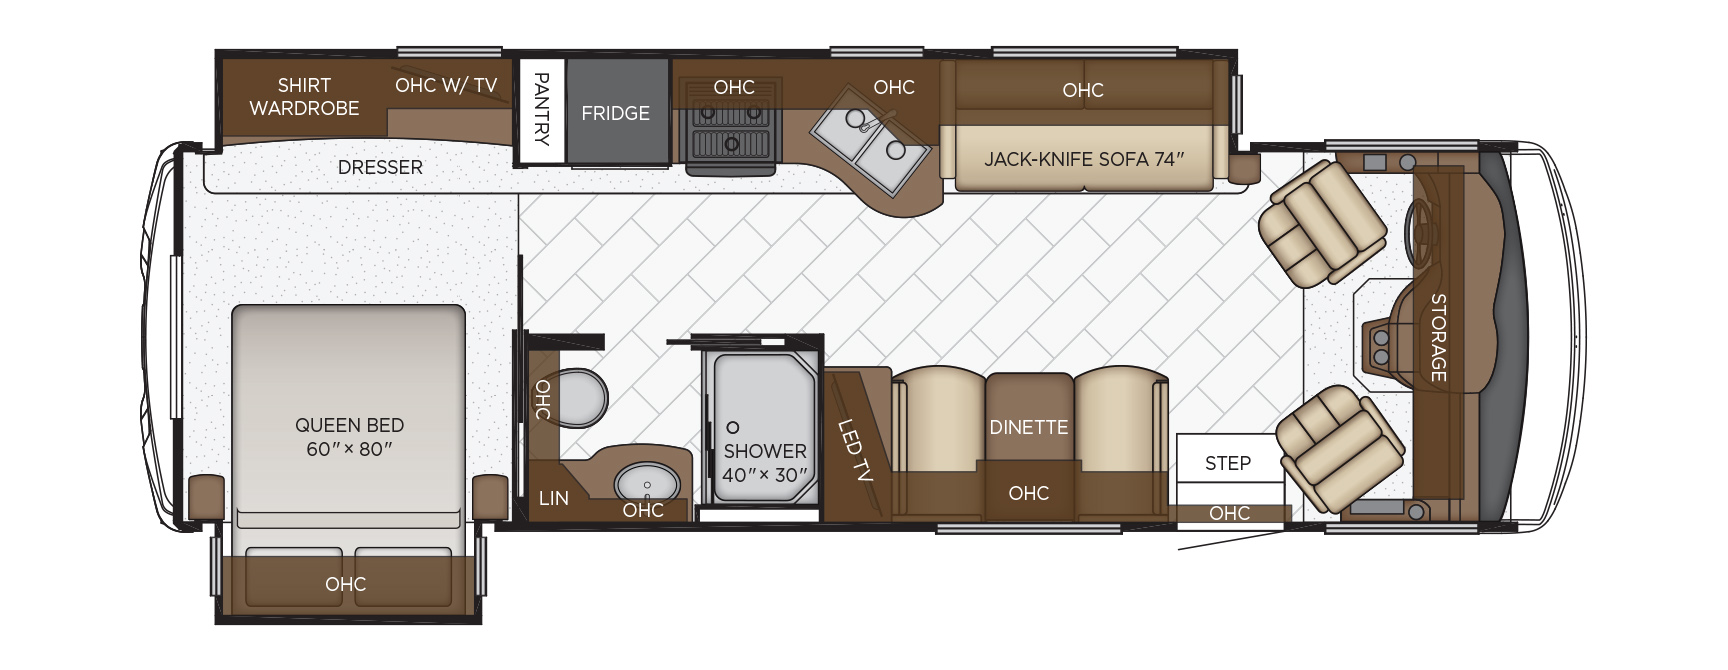 2020 Newmar Bay Star 3014 Floor Plan